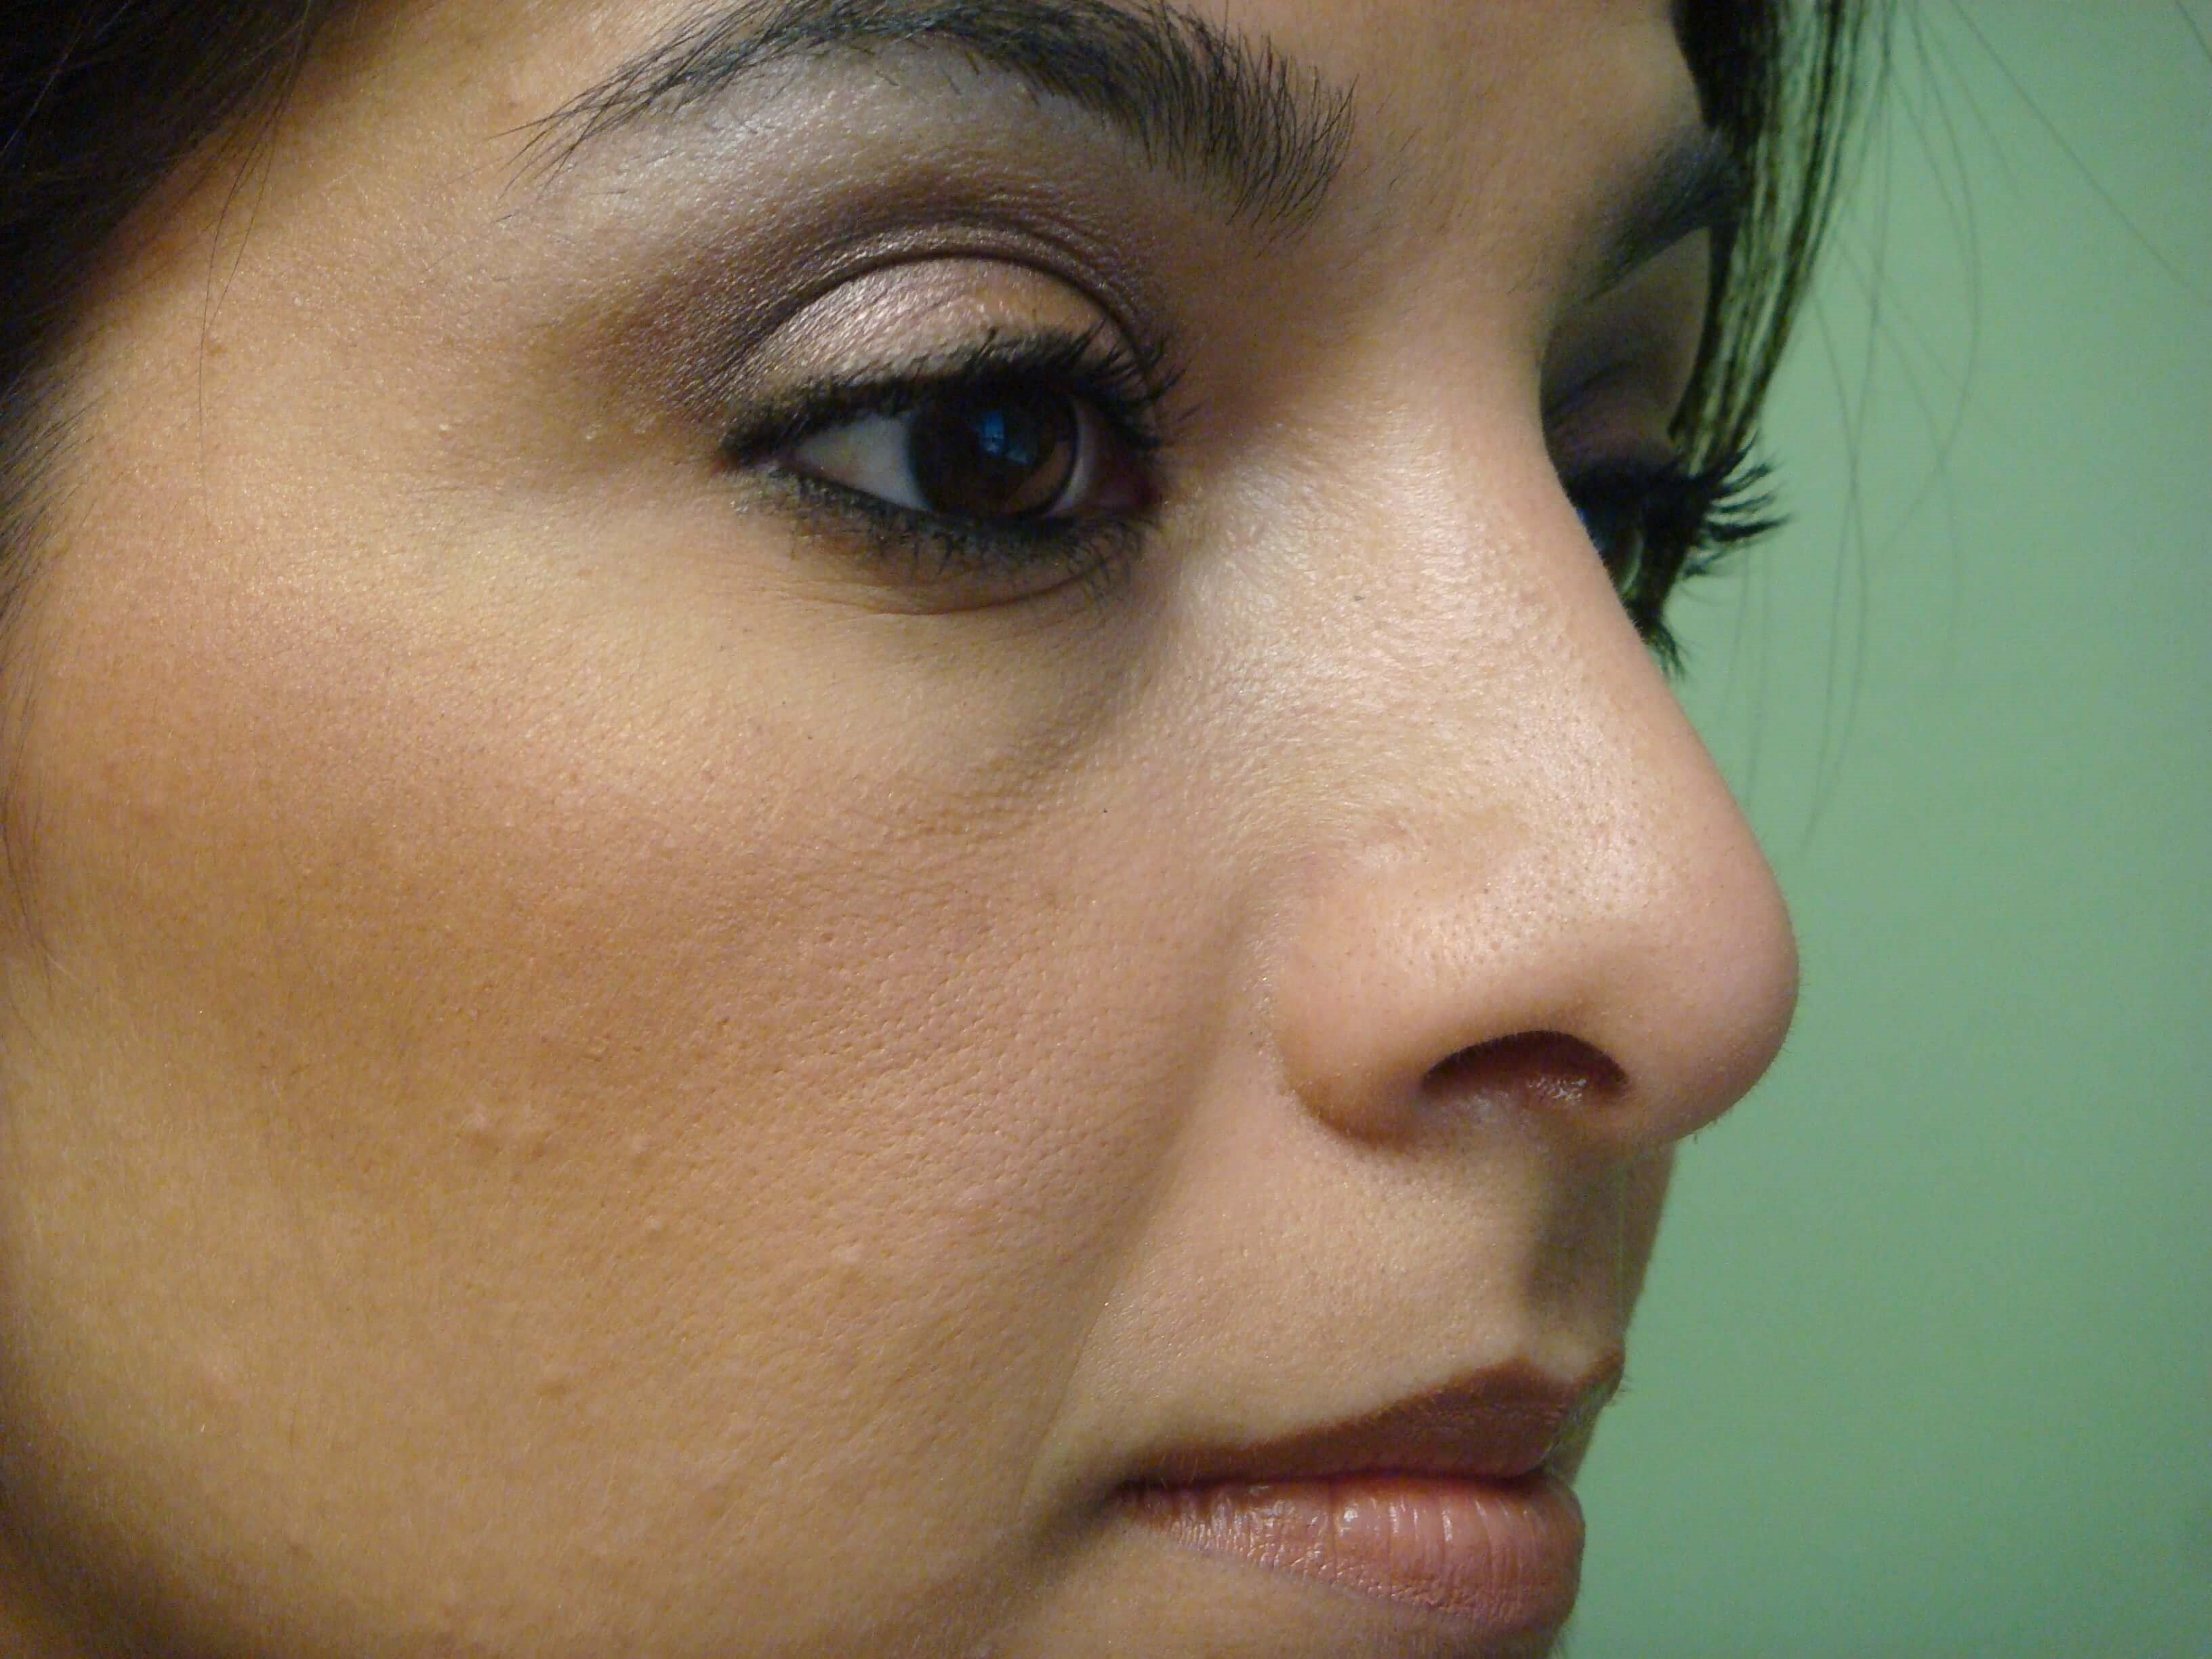 Rhinoplasty (nose job) After